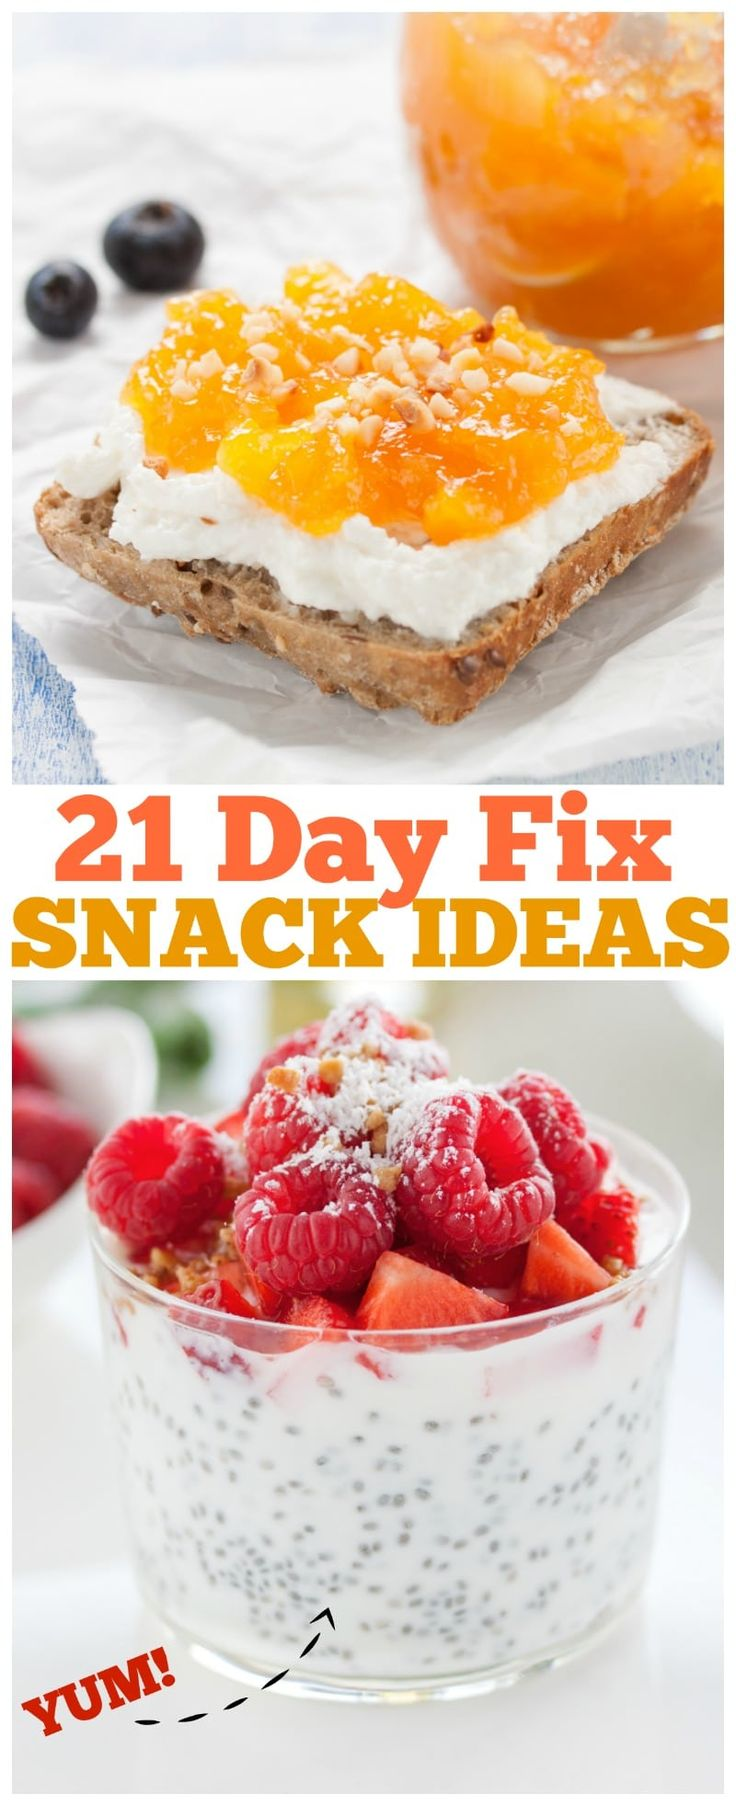 21-Day Fix Snack Recipes, Get a snack for Every work day of the month with these 20 21-day fix recipe ideas